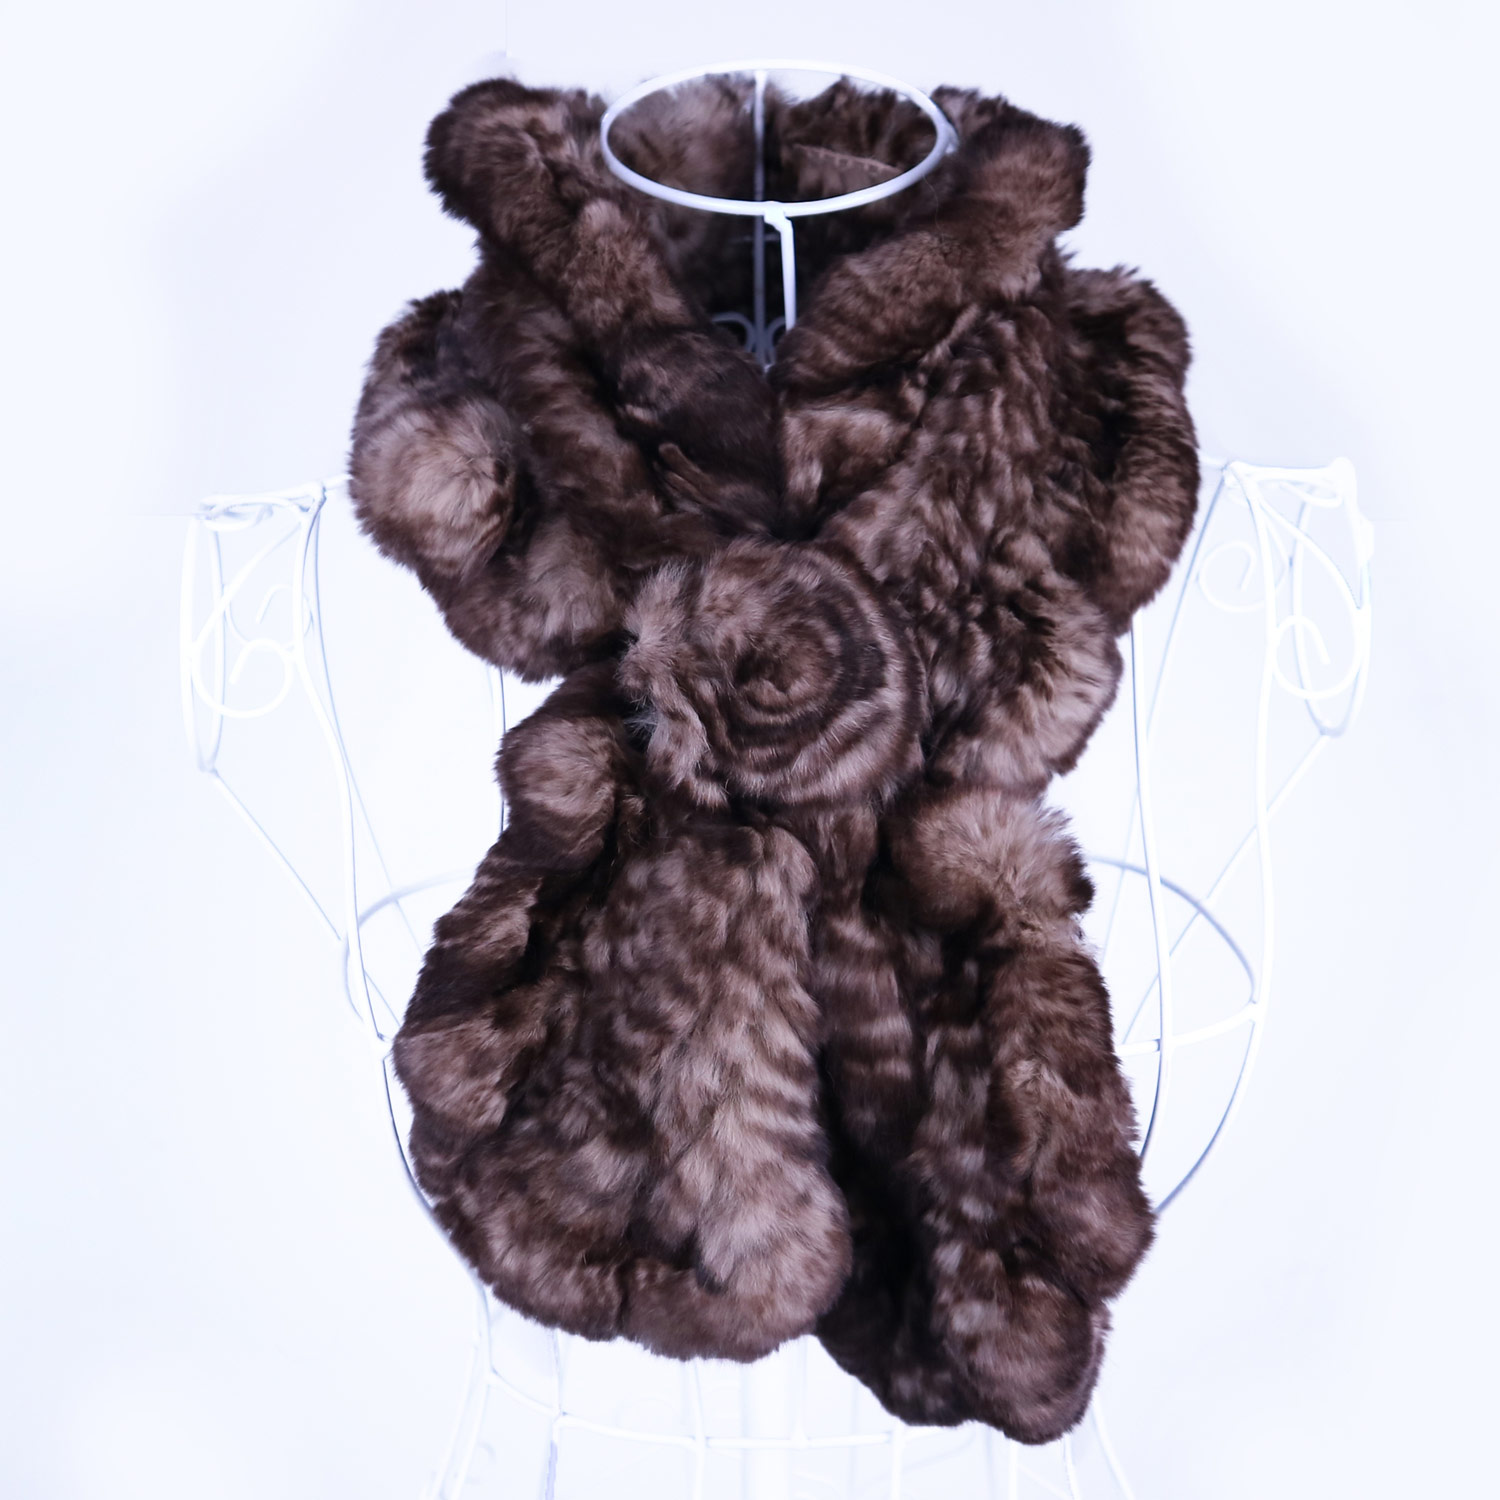 New Arrival Real Rex Rabbit Fur Scarf Women Winter Warm Luxurious Cross Over Floral Fur Scarve Long Fluffy Natural Fur Collar